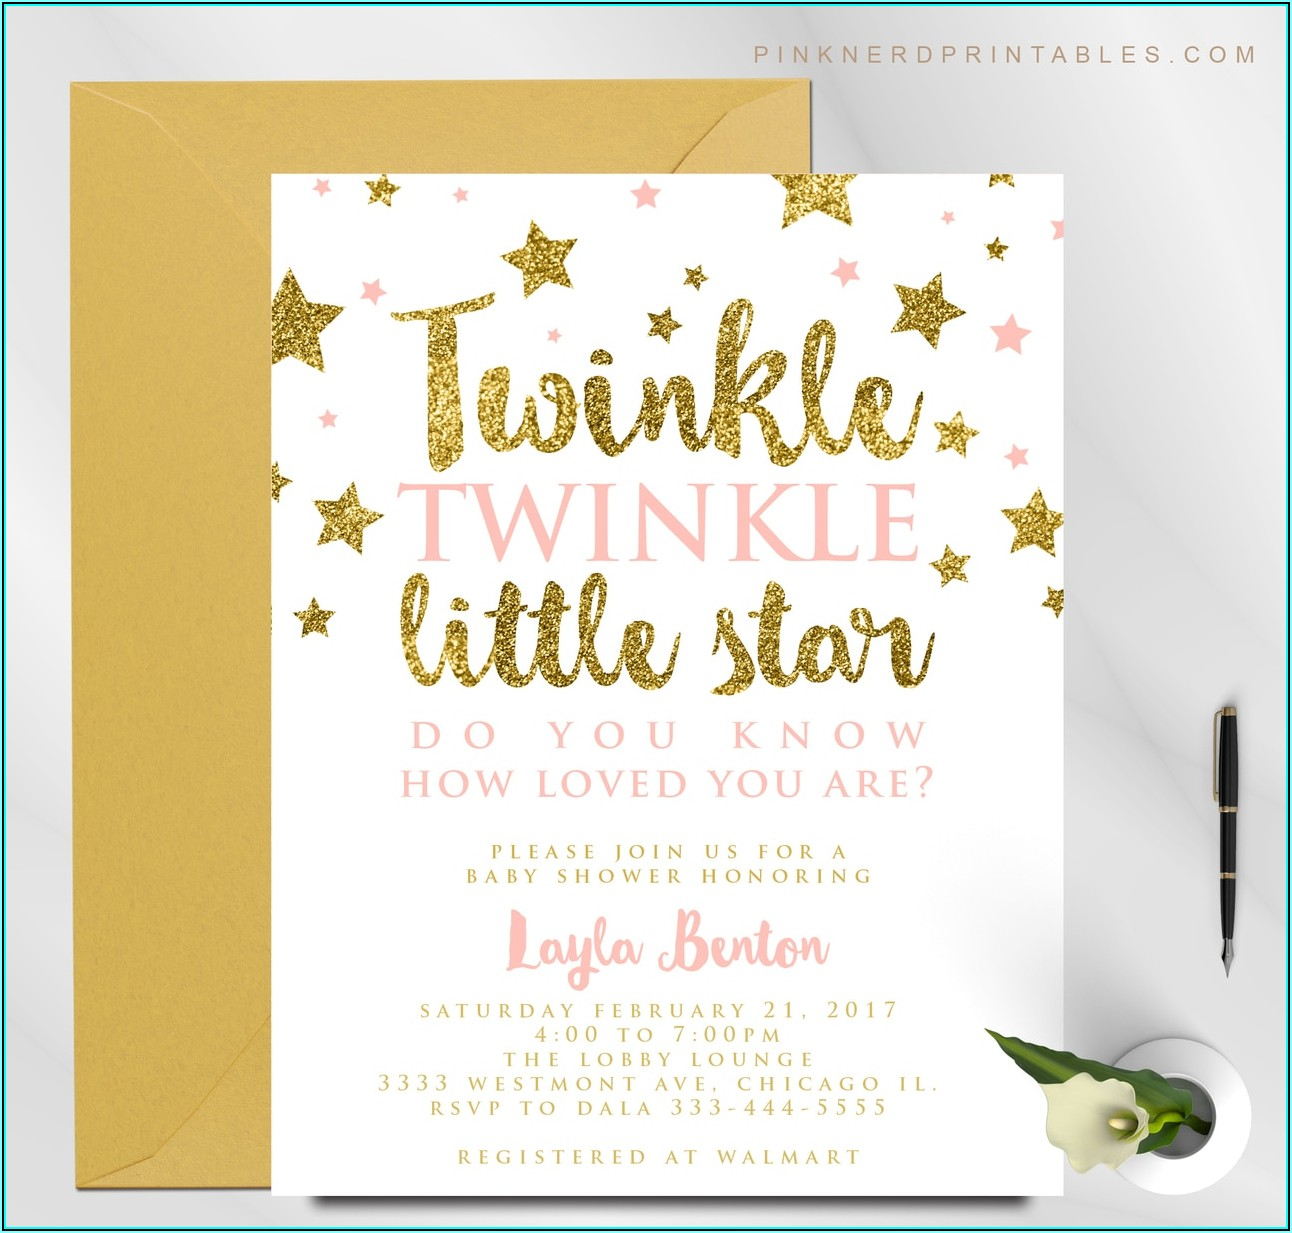 Twinkle Twinkle Little Star Birthday Invitation Wording